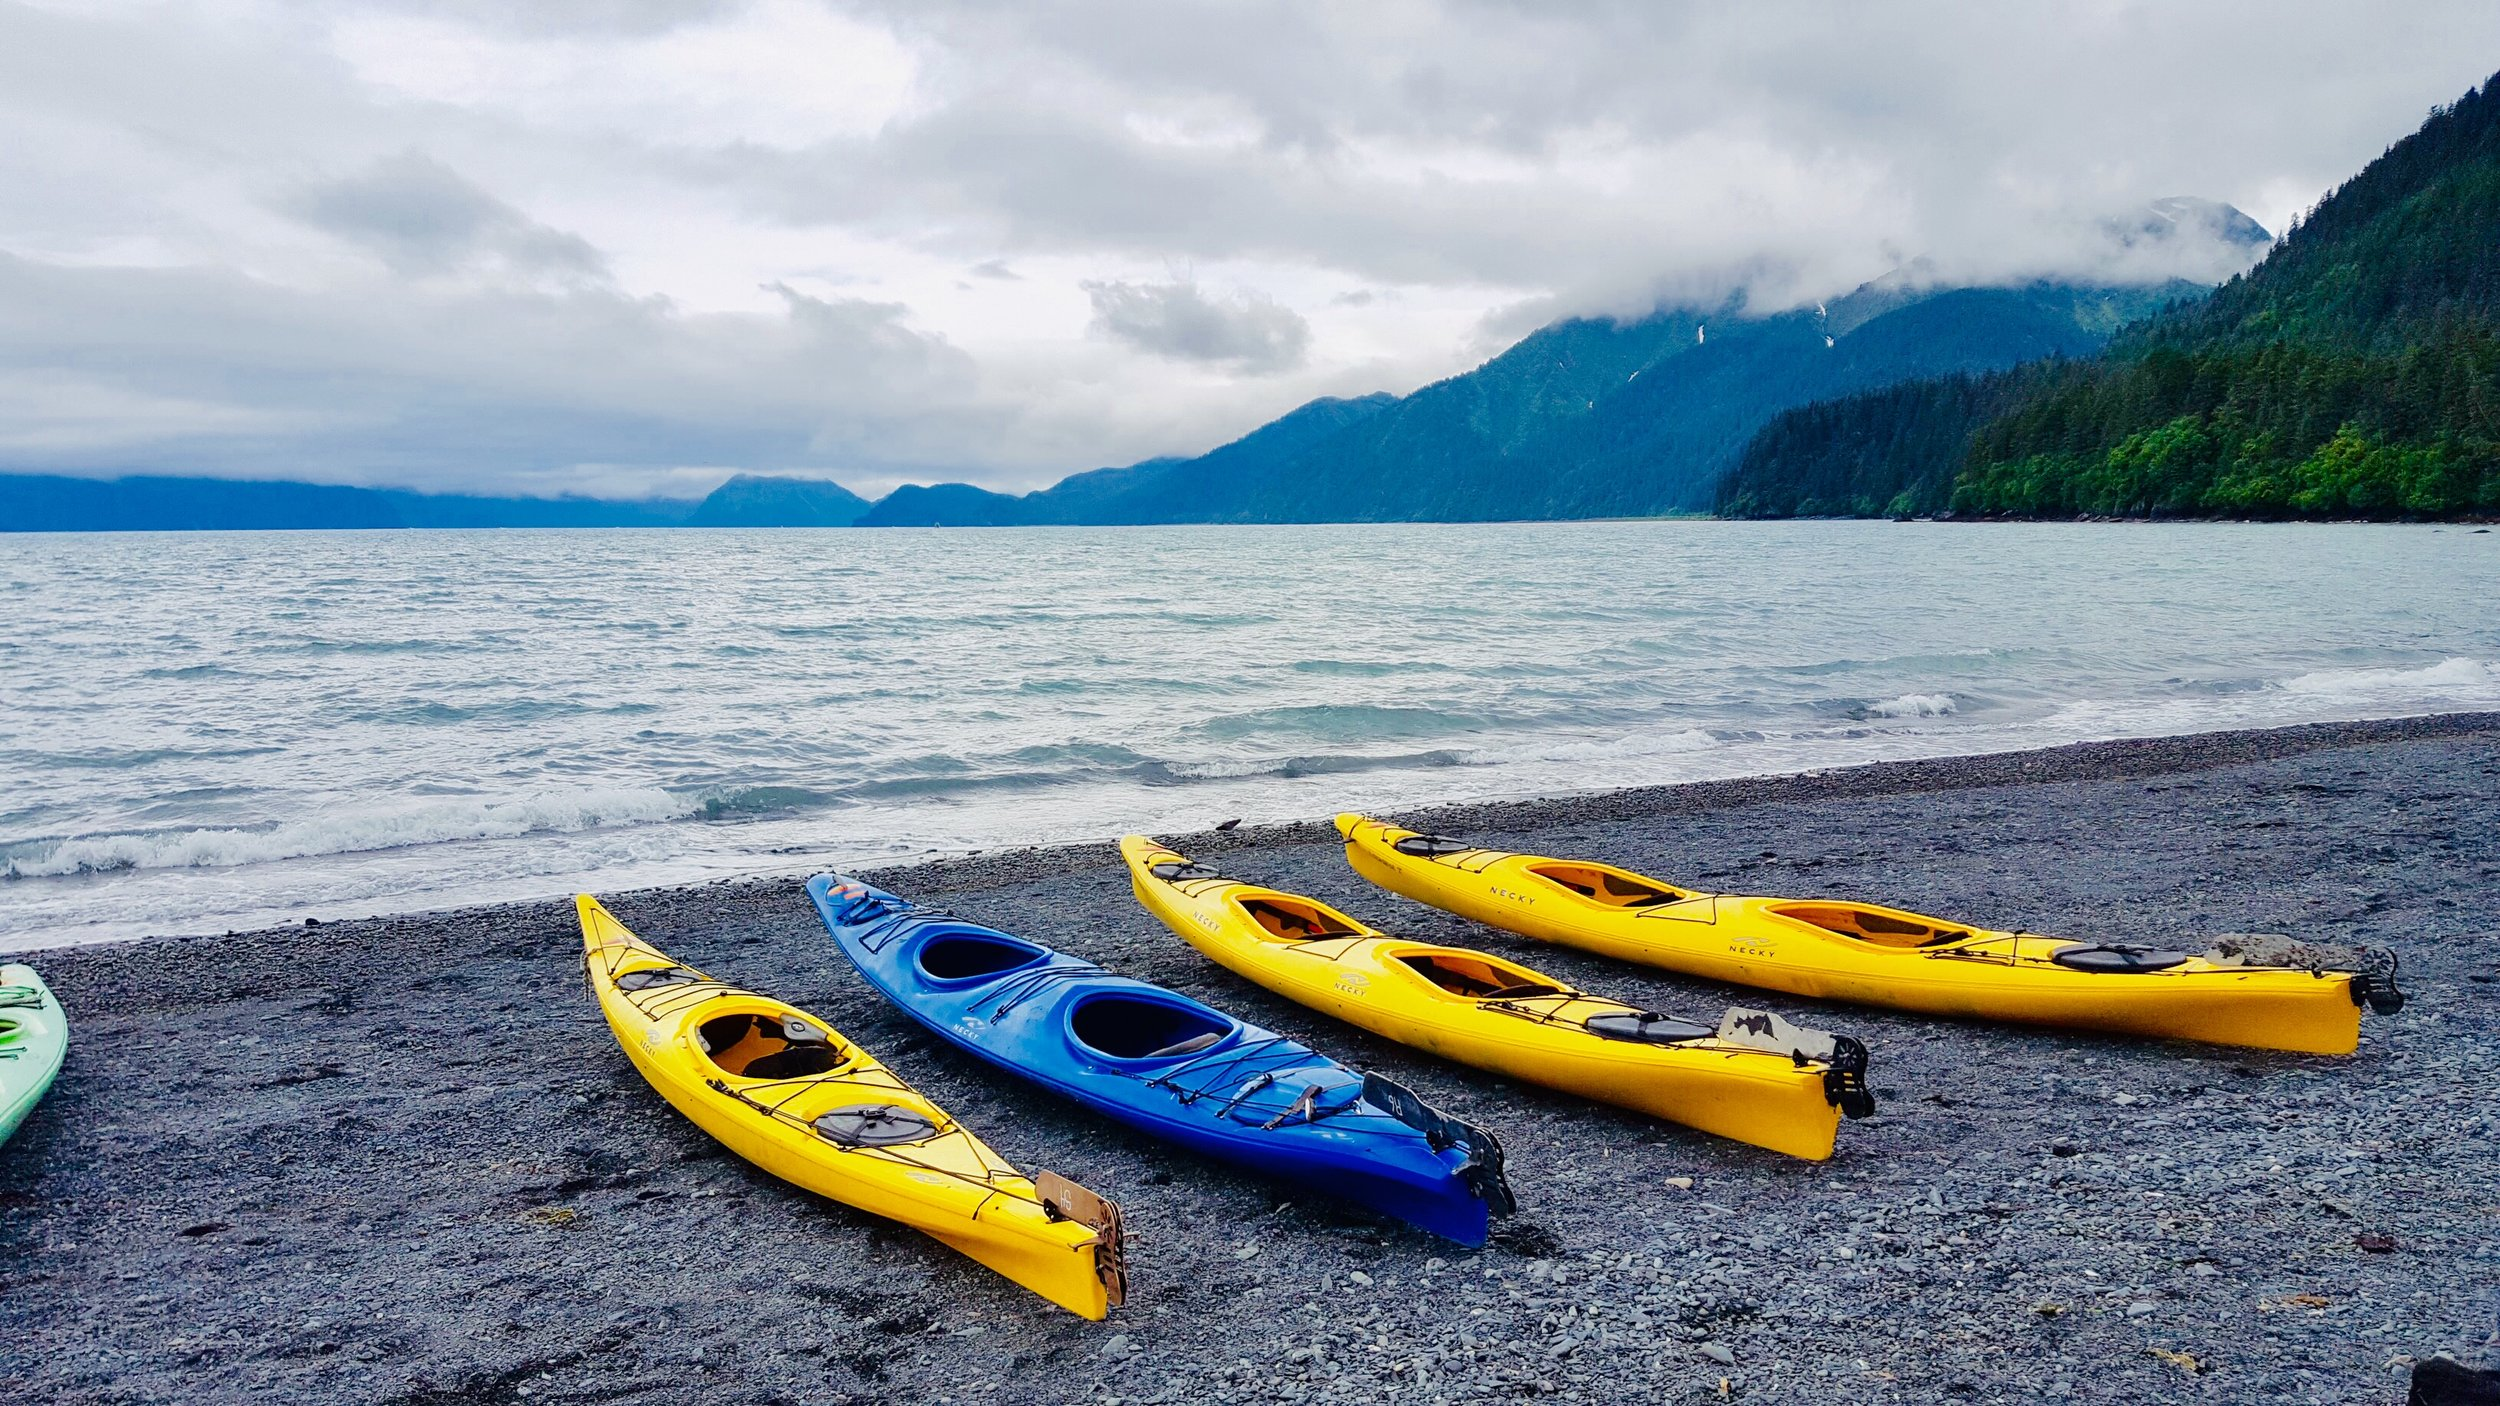 Tandem kayaks allow you to travel with more than one person without being split apart.